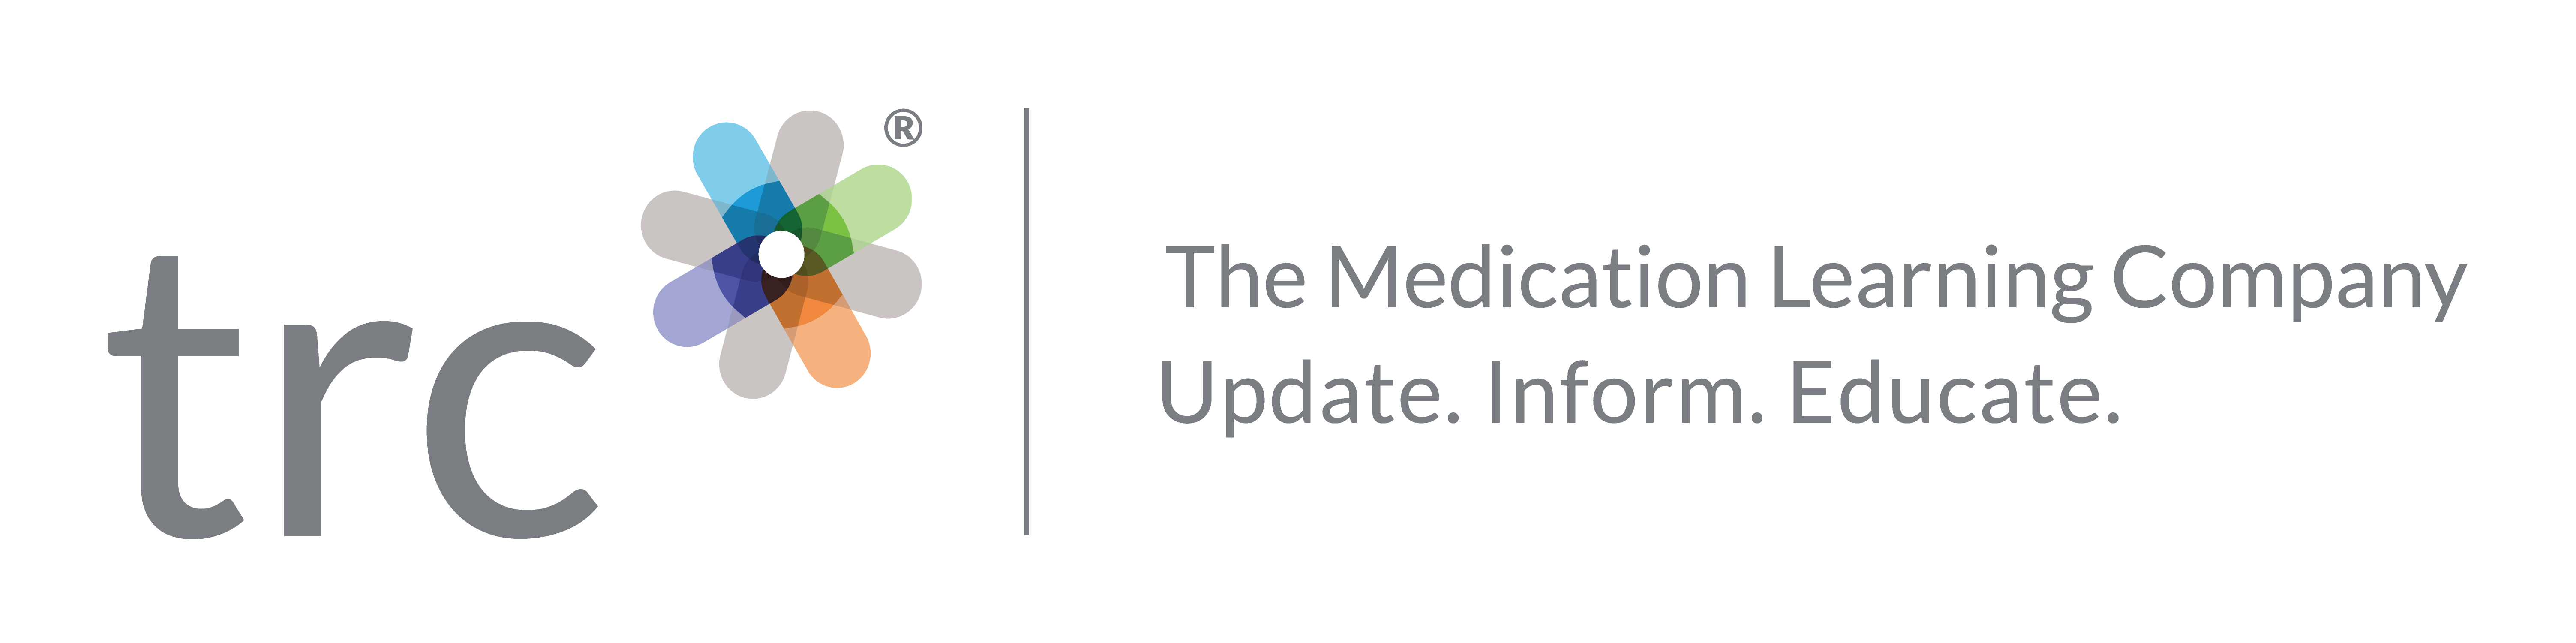 TRC | The Medication Learning Company - Update. Inform. Educate.